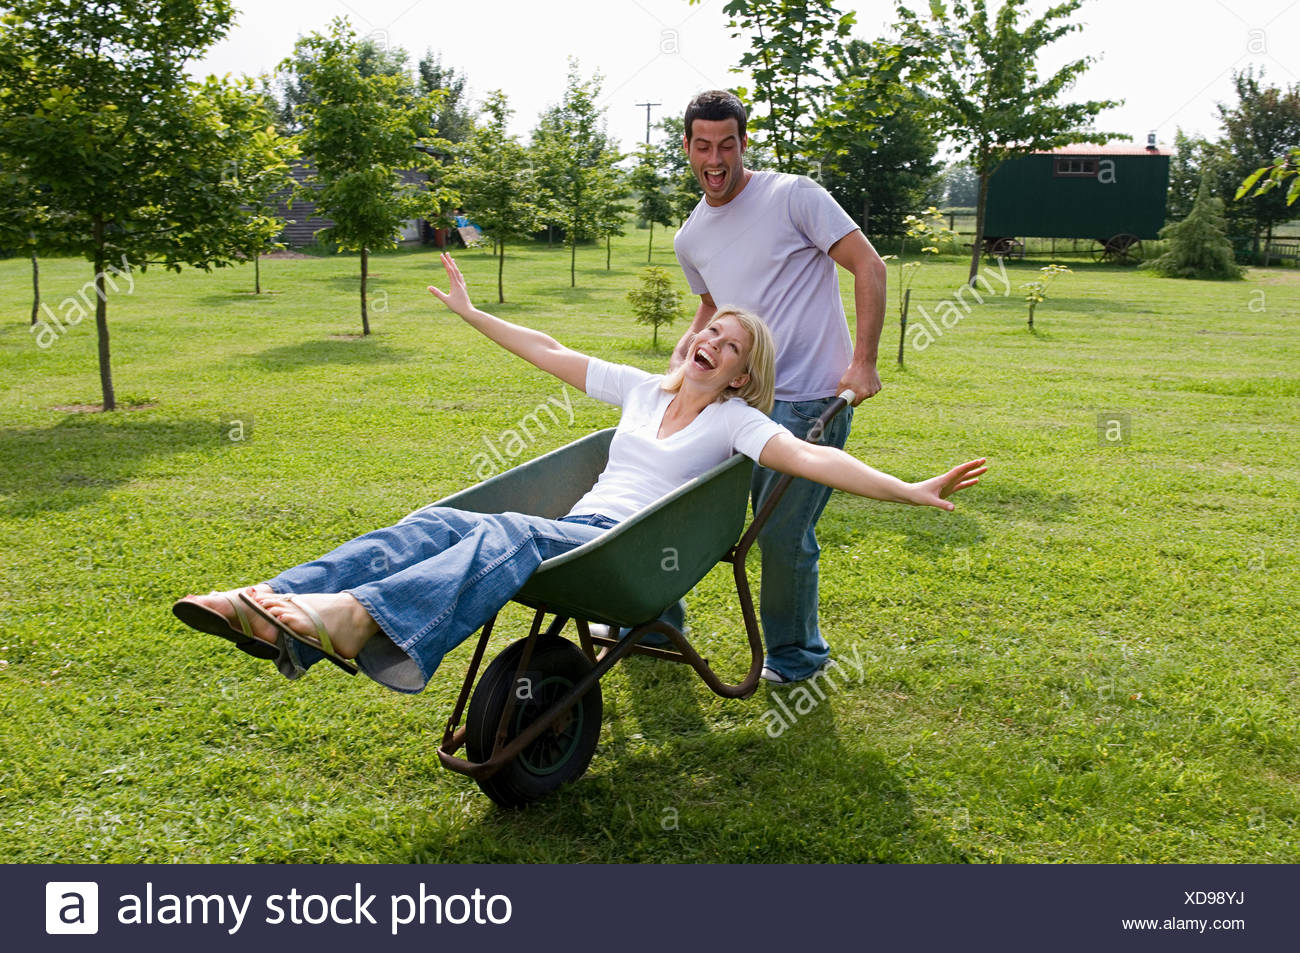 A couple messing around - Stock Image